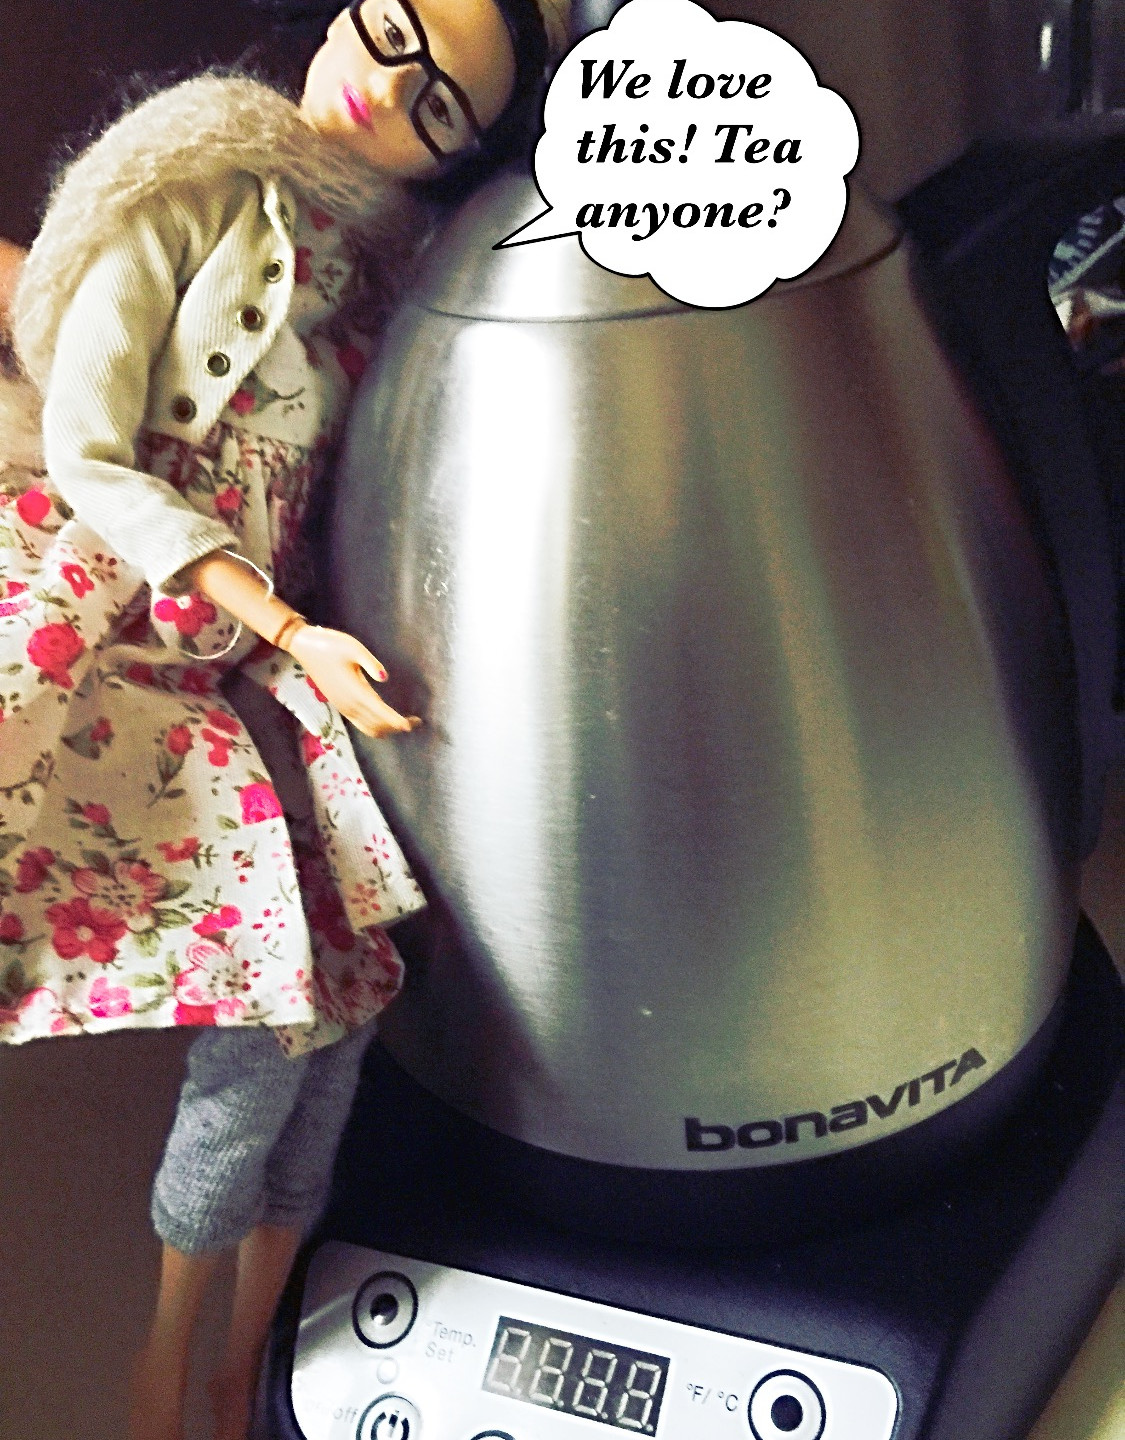 Electric Kettle love!